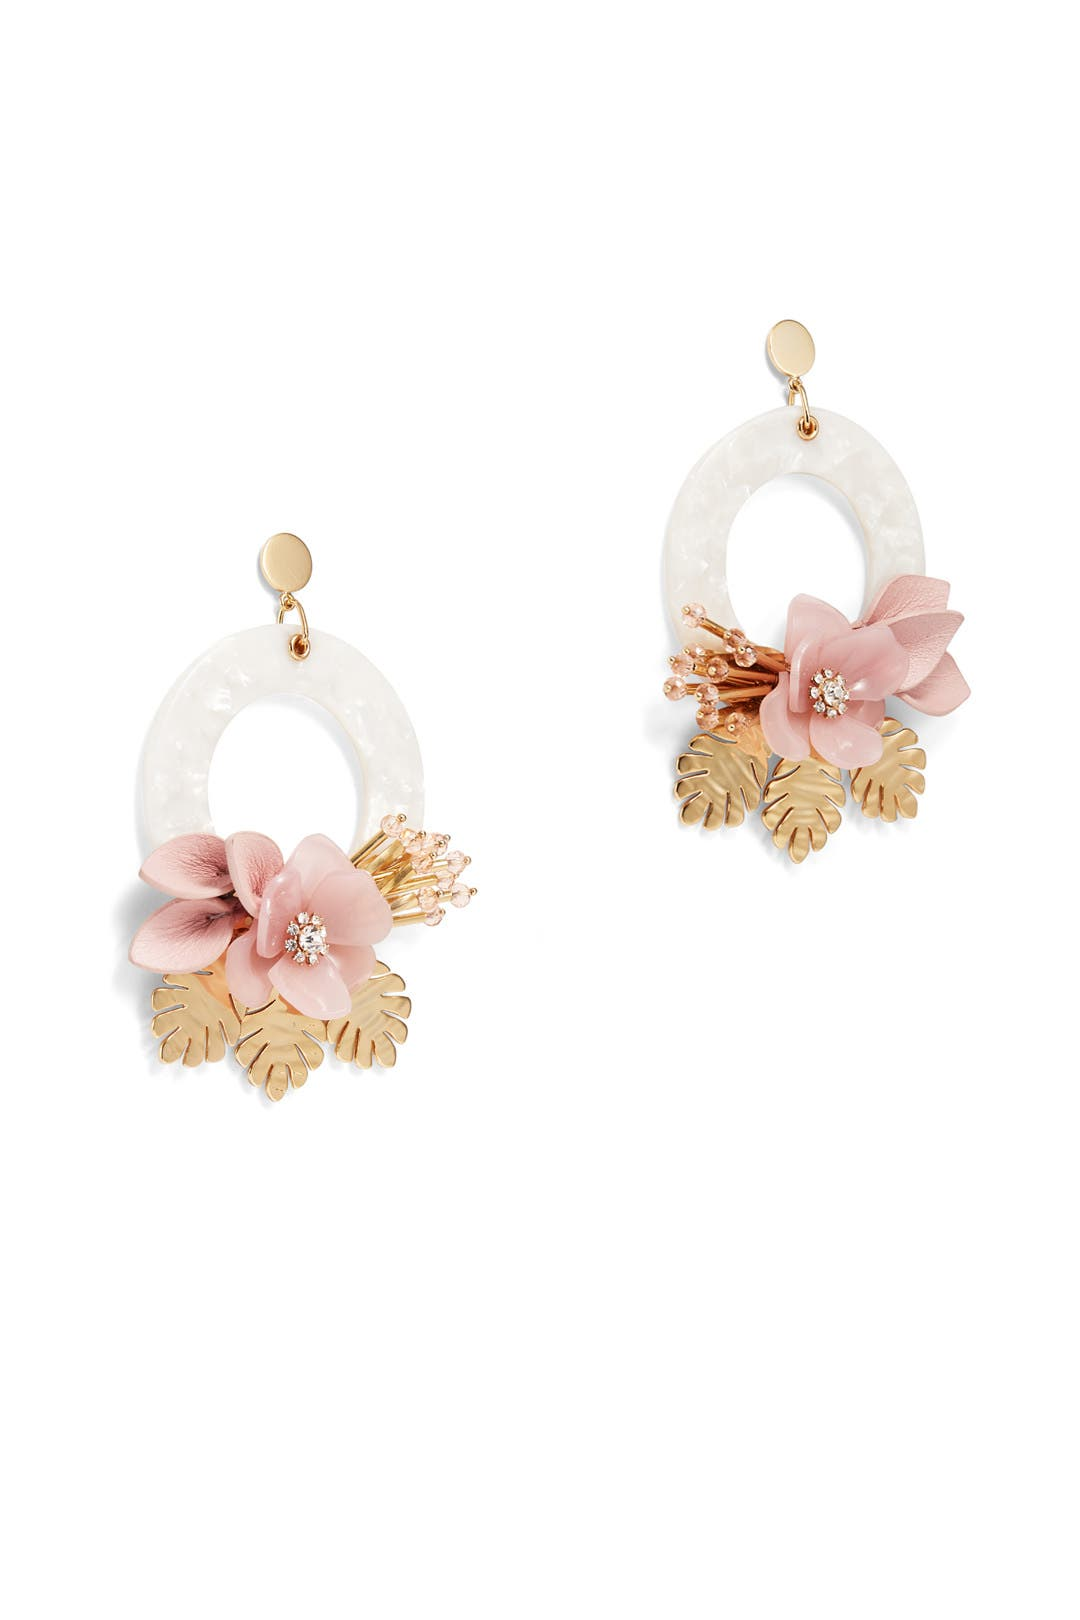 23367bbdb3a17 kate spade new york accessories Slice of Stone Statement Earrings